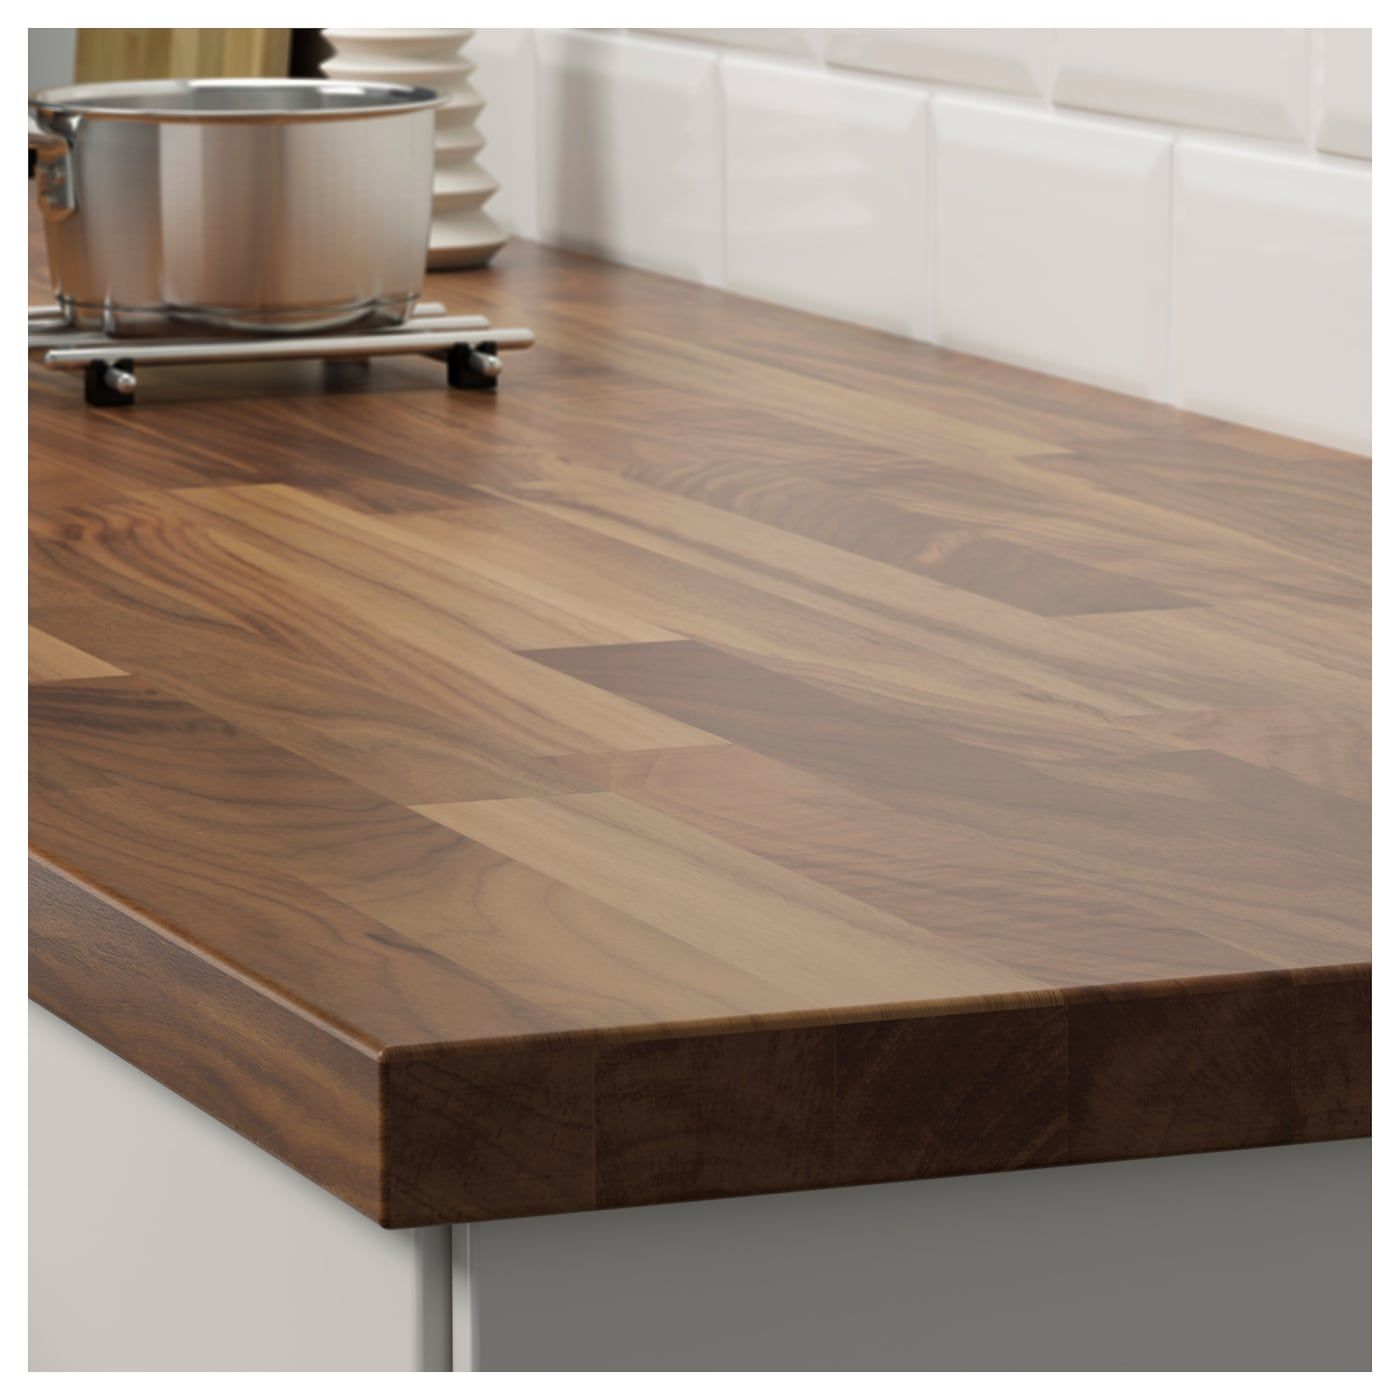 Karlby Arbeitsplatte Nussbaum Furnier Ikea Osterreich Replacing Kitchen Countertops Karlby Countertop Wood Countertops